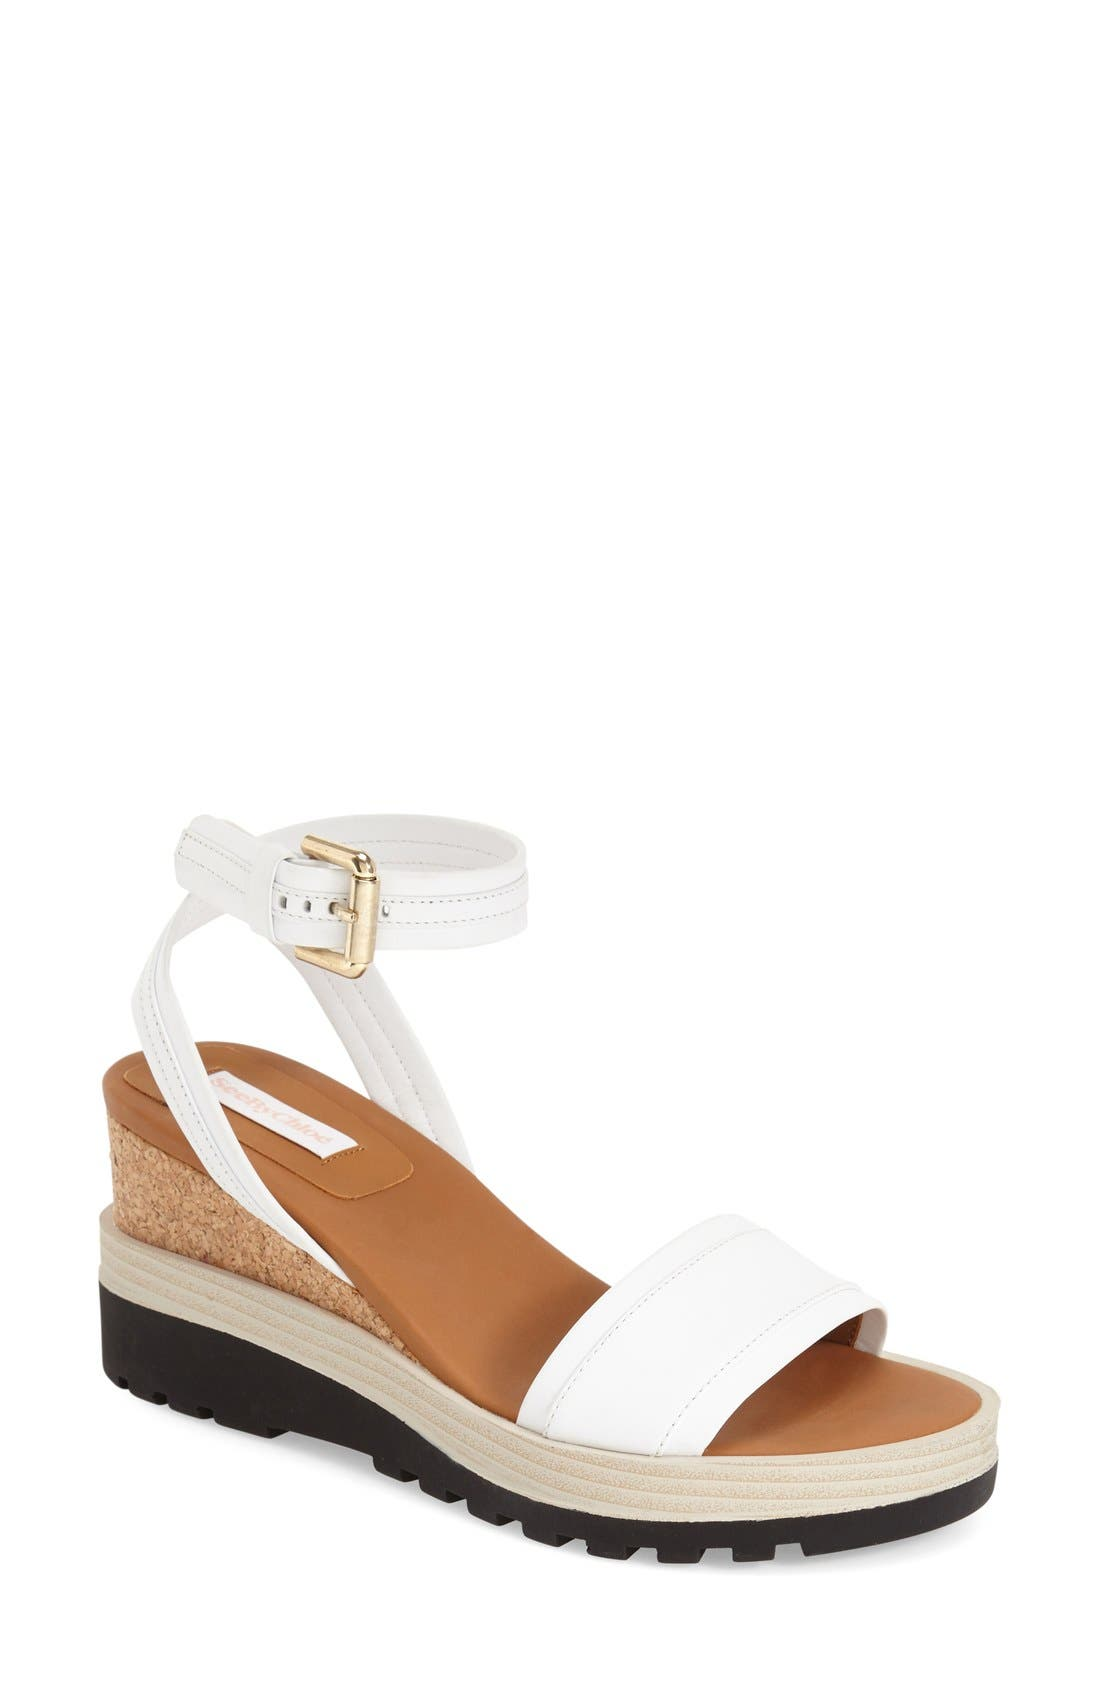 SEE BY CHLOÉ 'Robin' Wedge Sandal